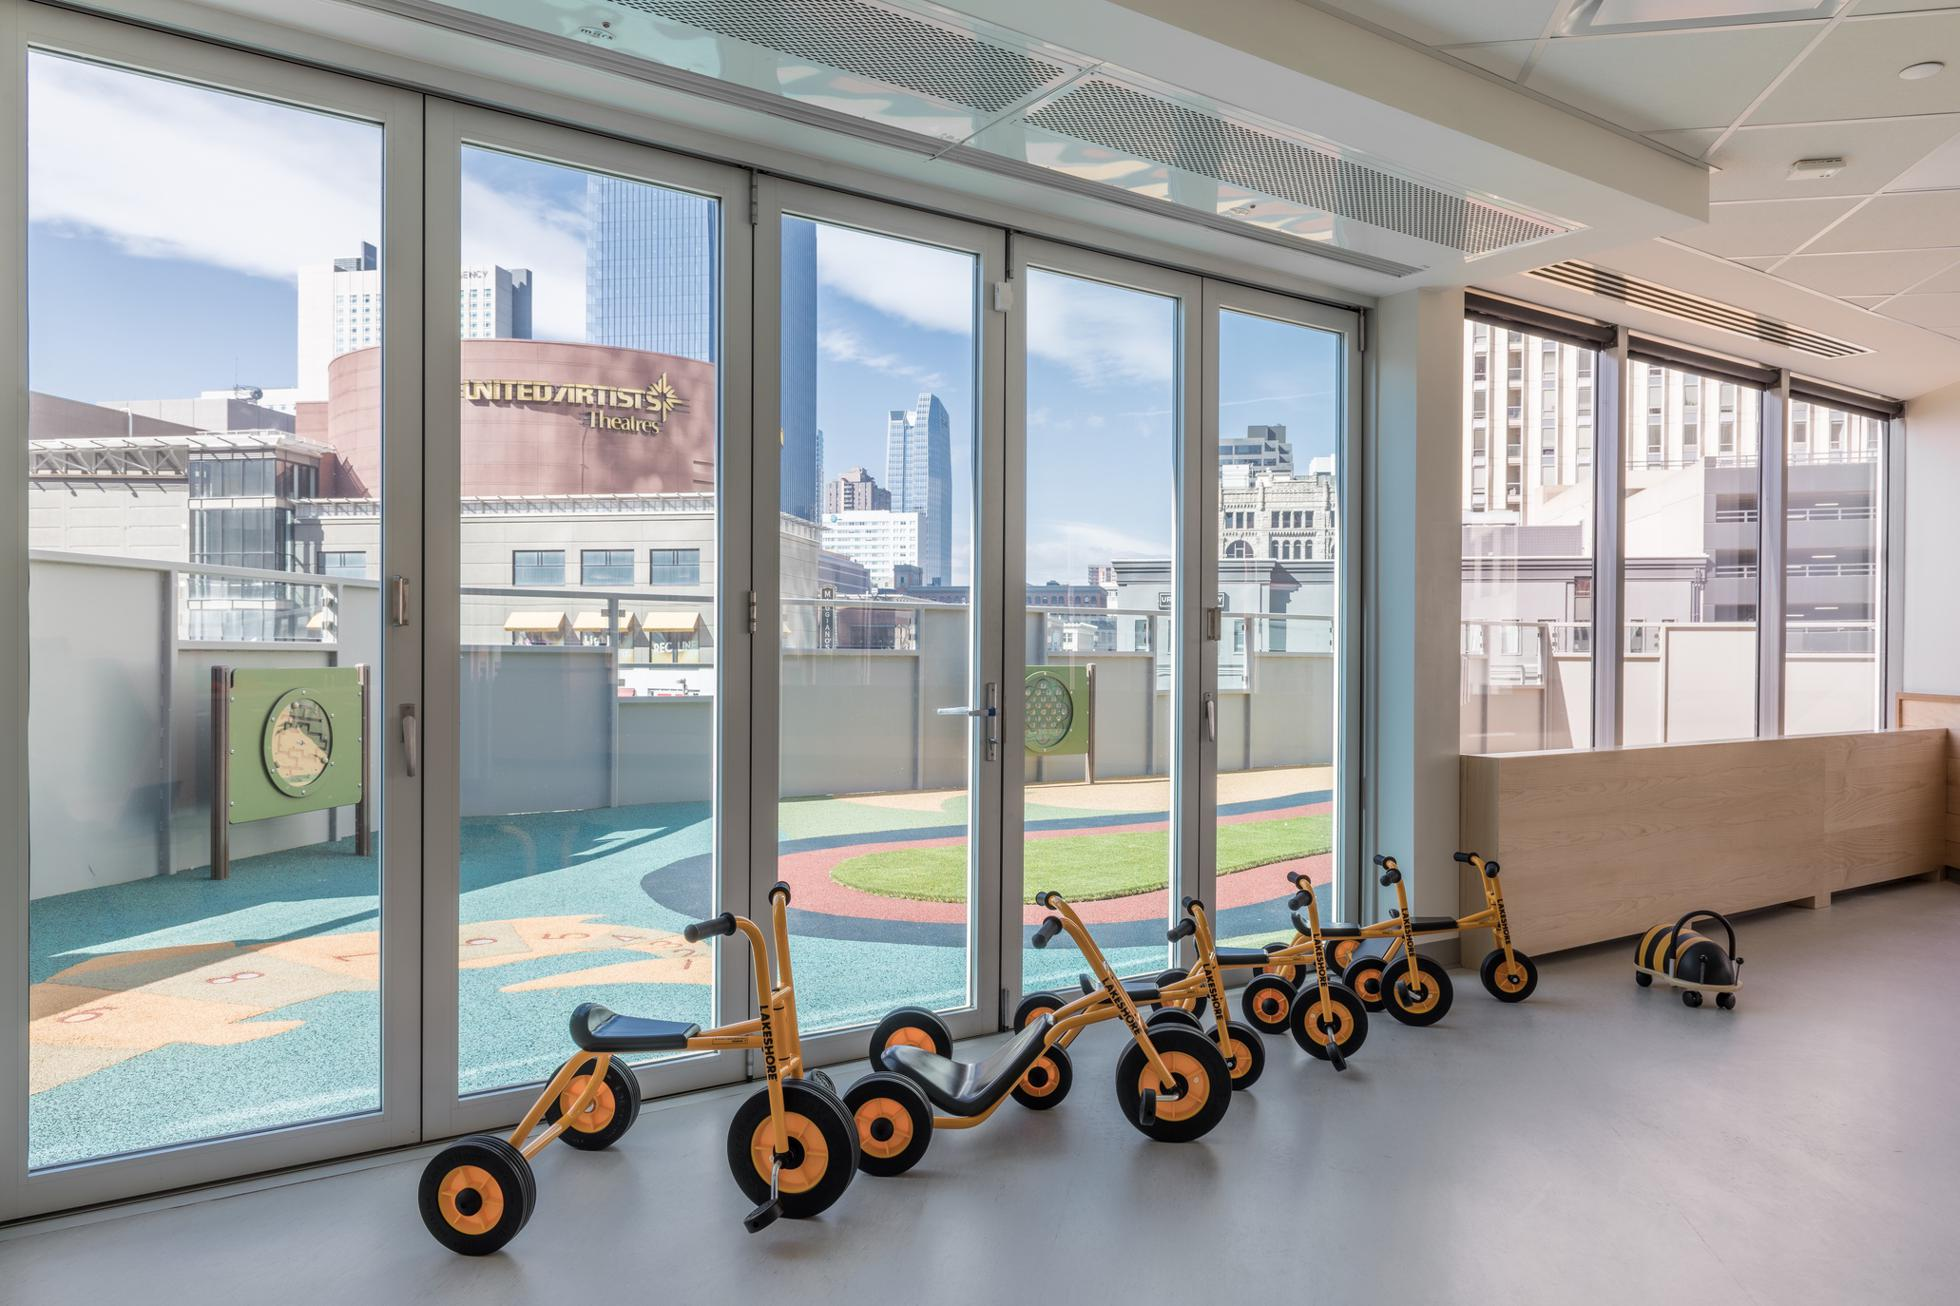 Various sized tricycles sit in front of glass doors that lead to an outdoor play area.